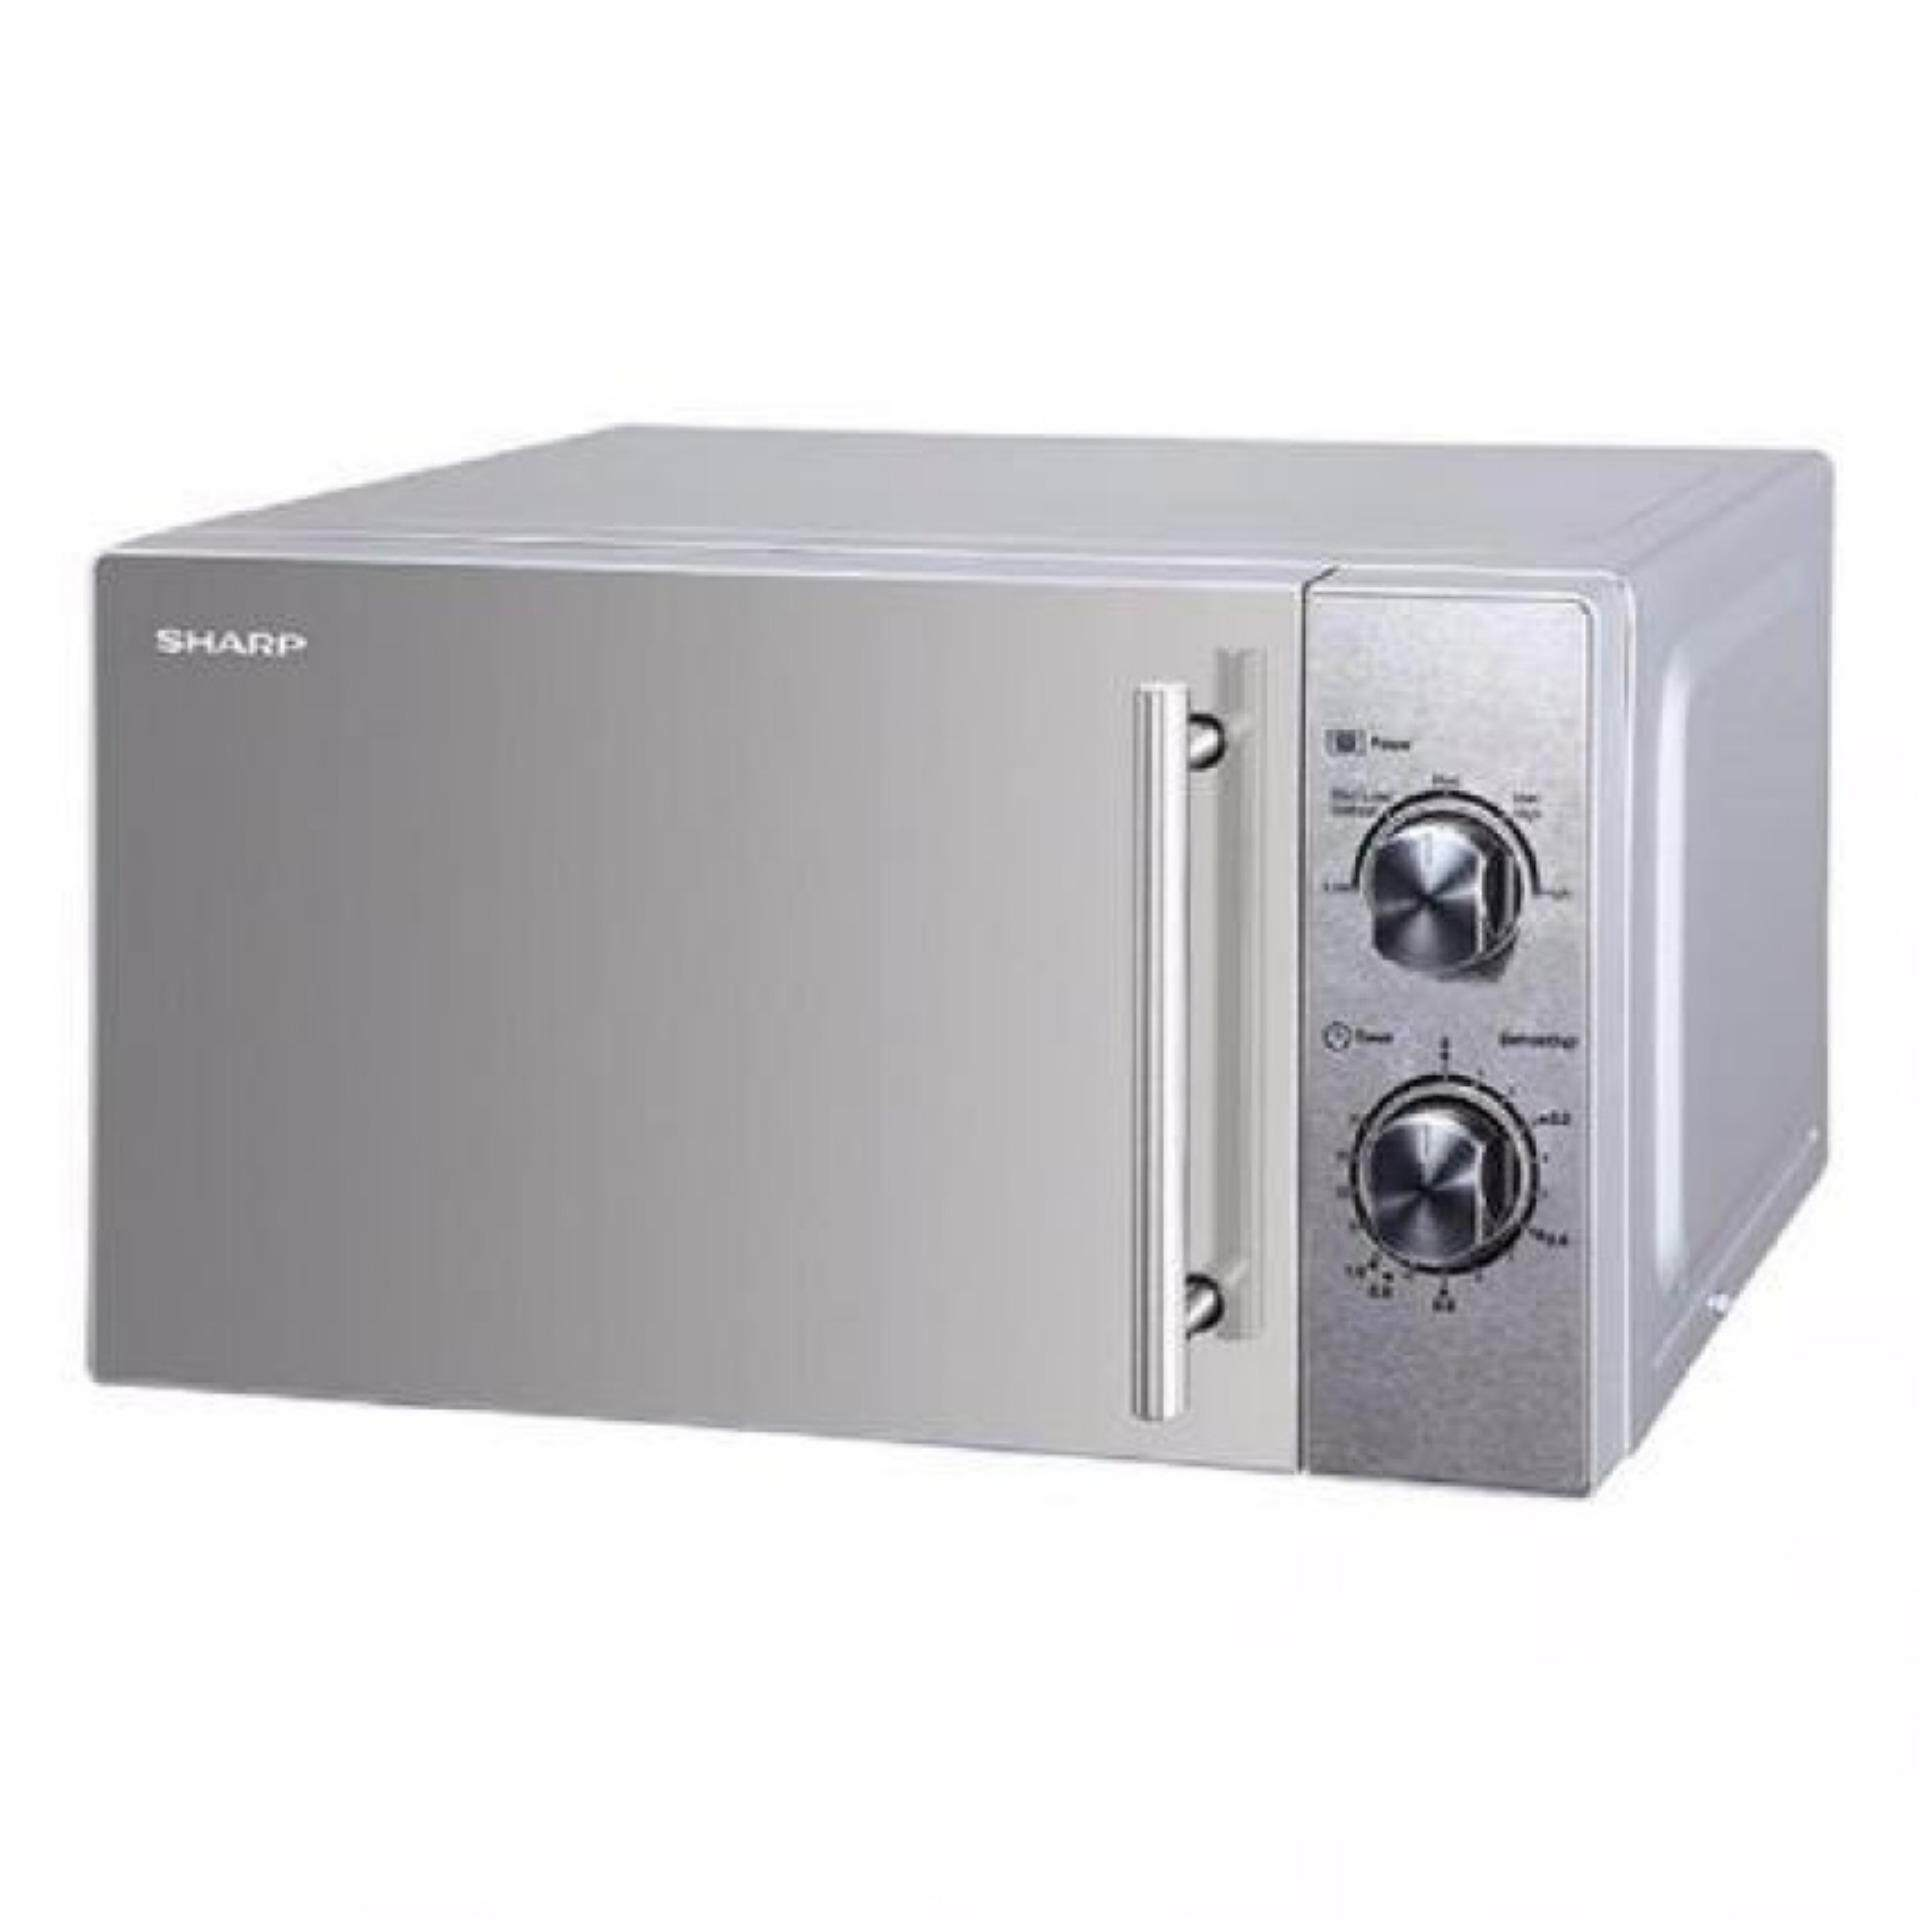 Sharp Microwave Oven With Grill R613cst 20l Reviews Ratings And Best Price In Kl Selangor Malaysia